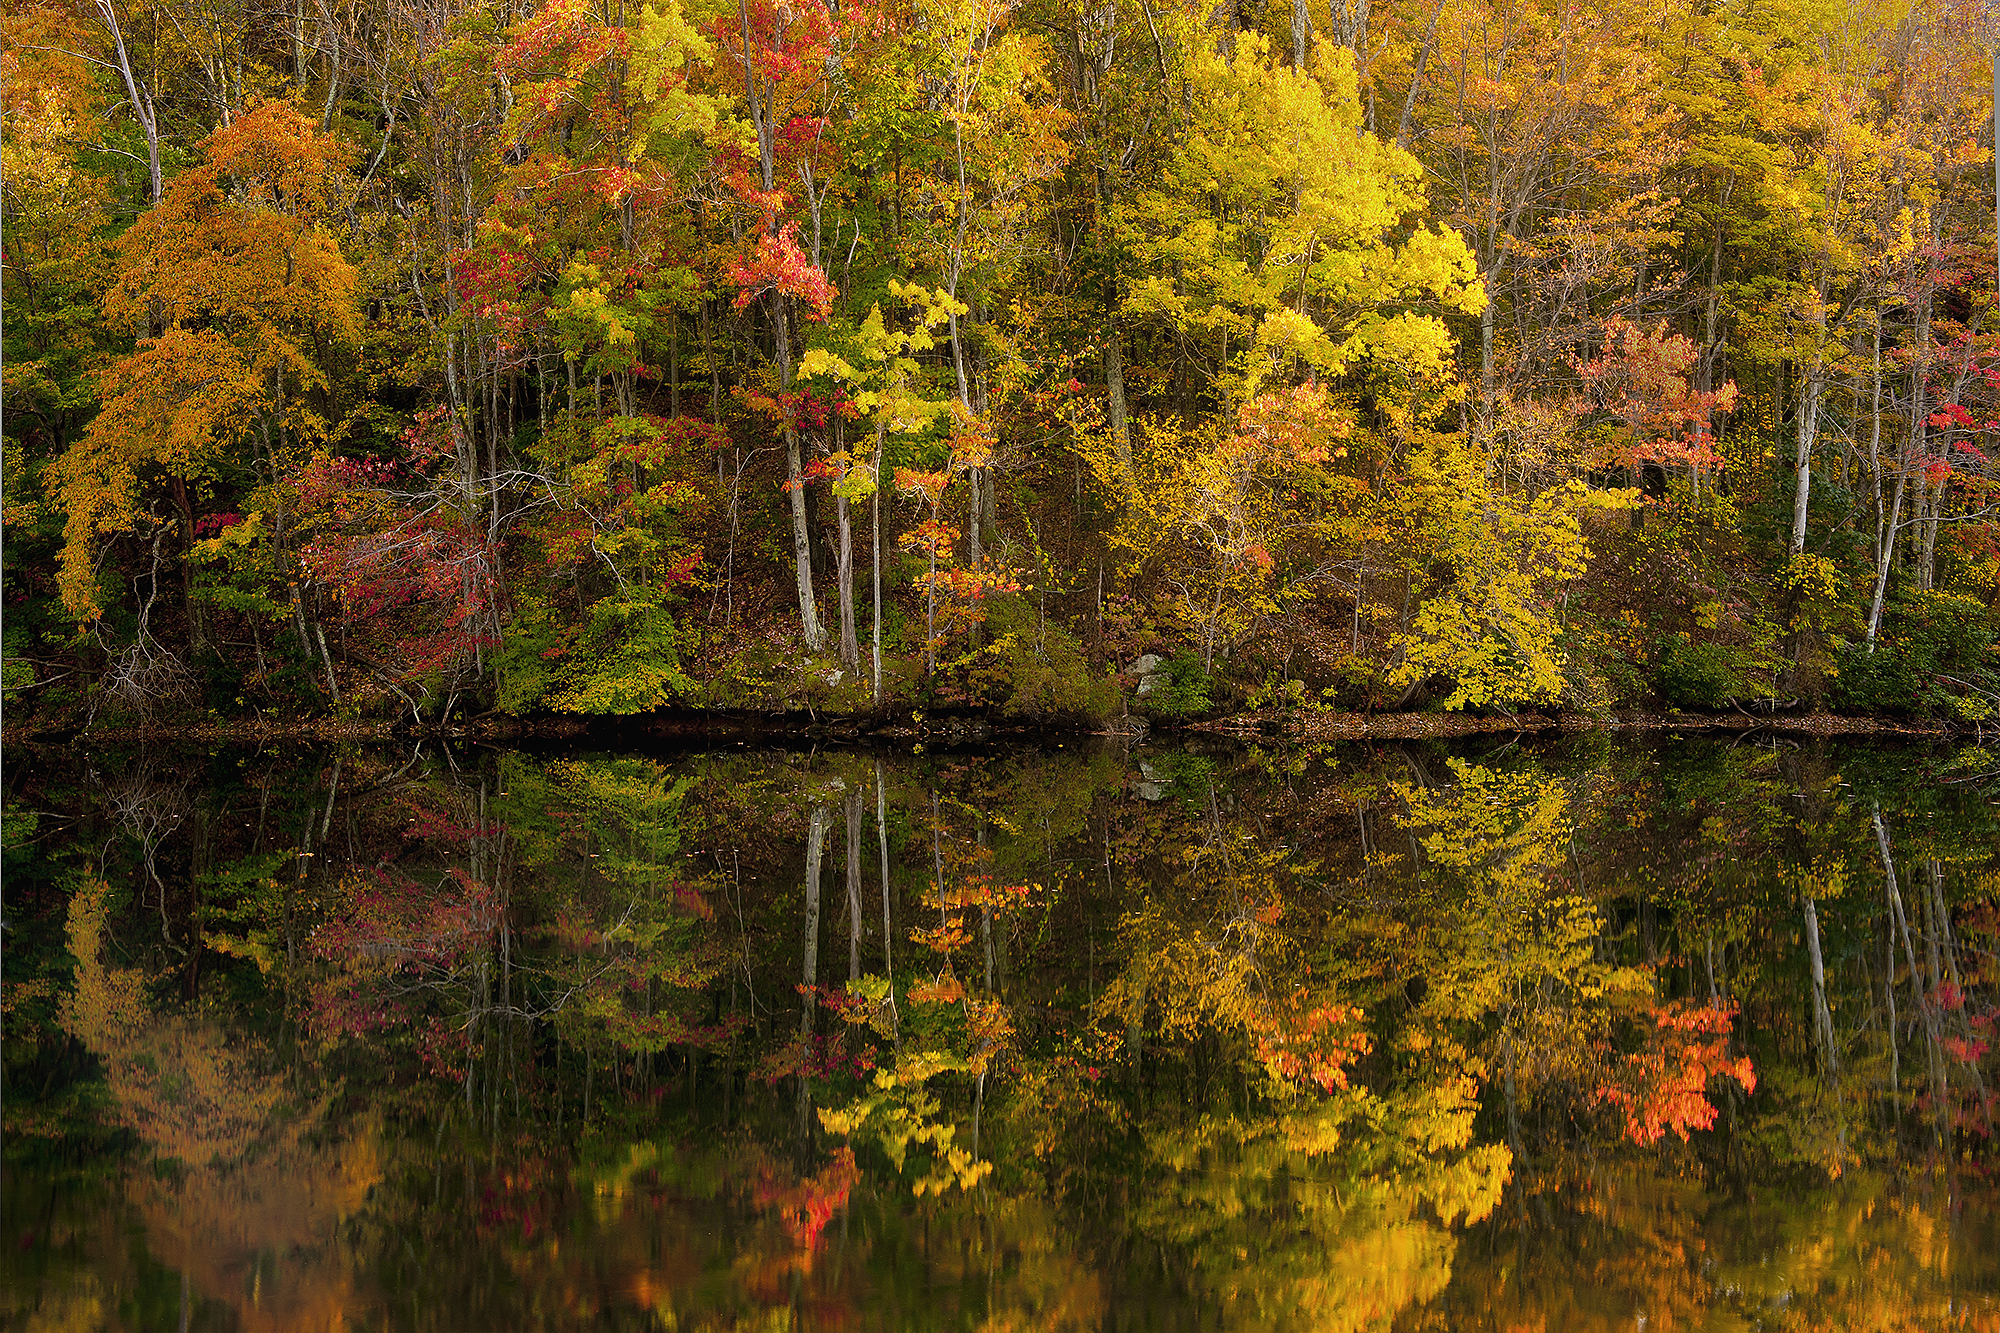 Mint Springs Valley Park Pond in Fall, Crozet, VA_DSC4468 7